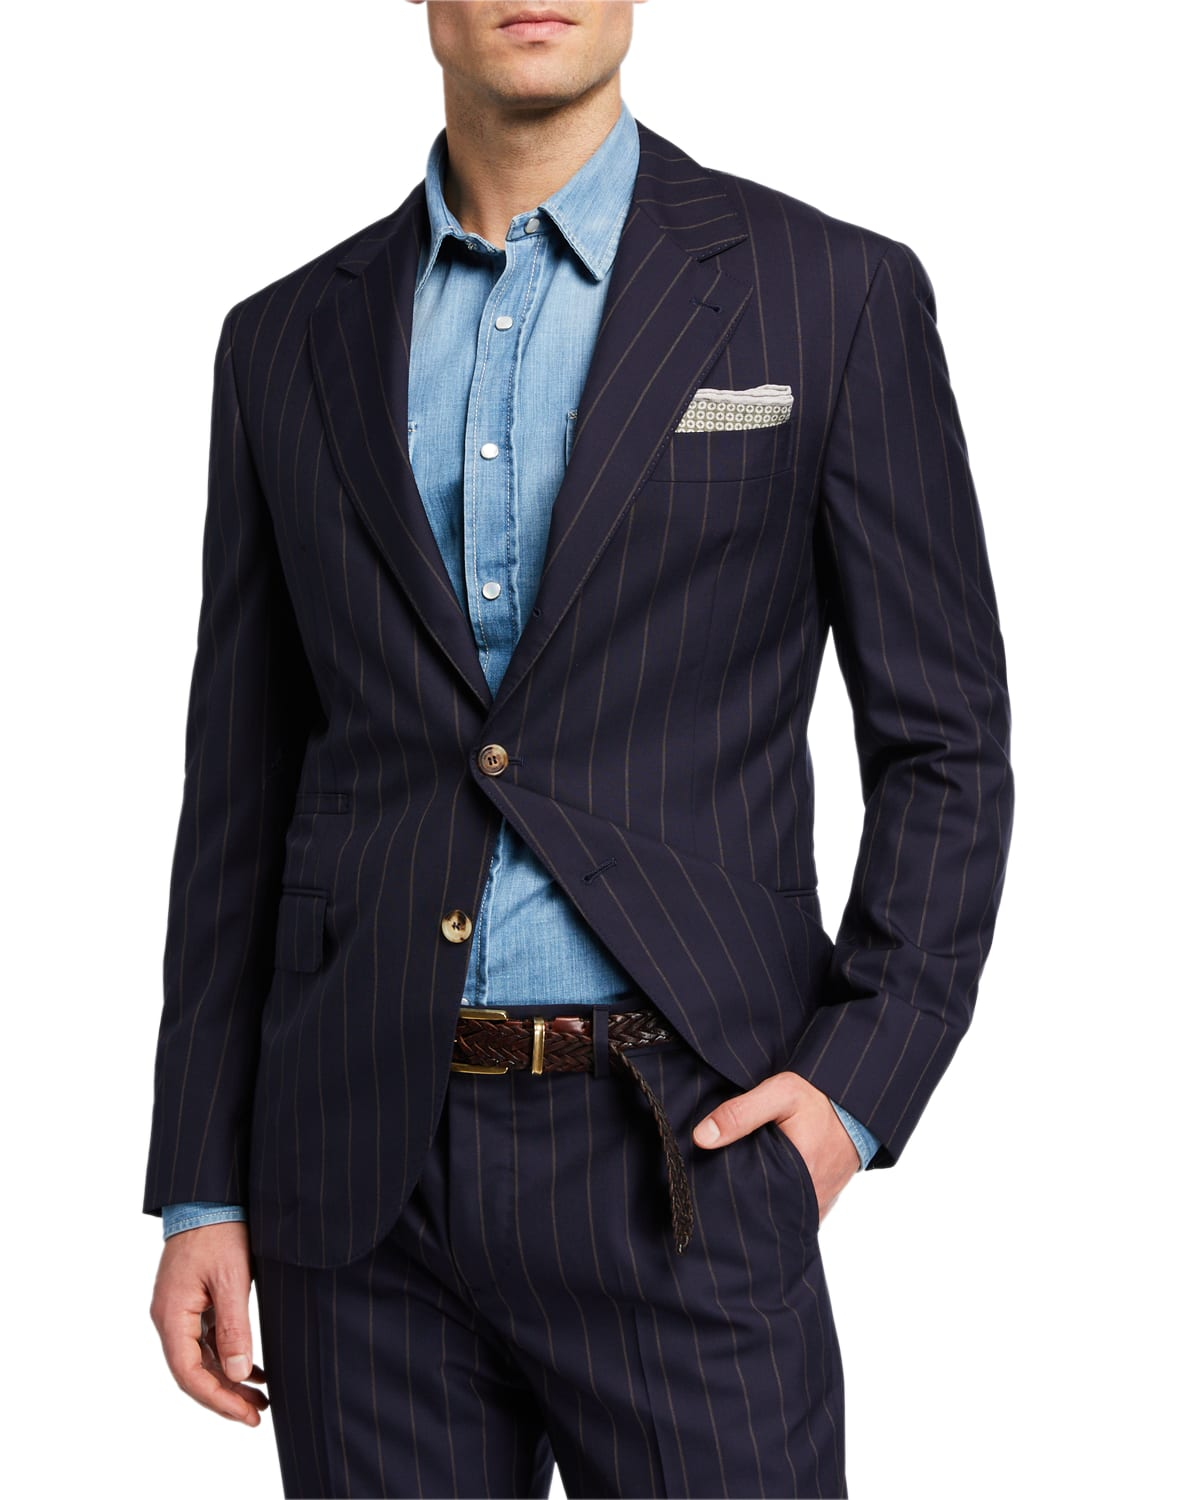 Men's Two-Piece Pinstriped Wool Suit